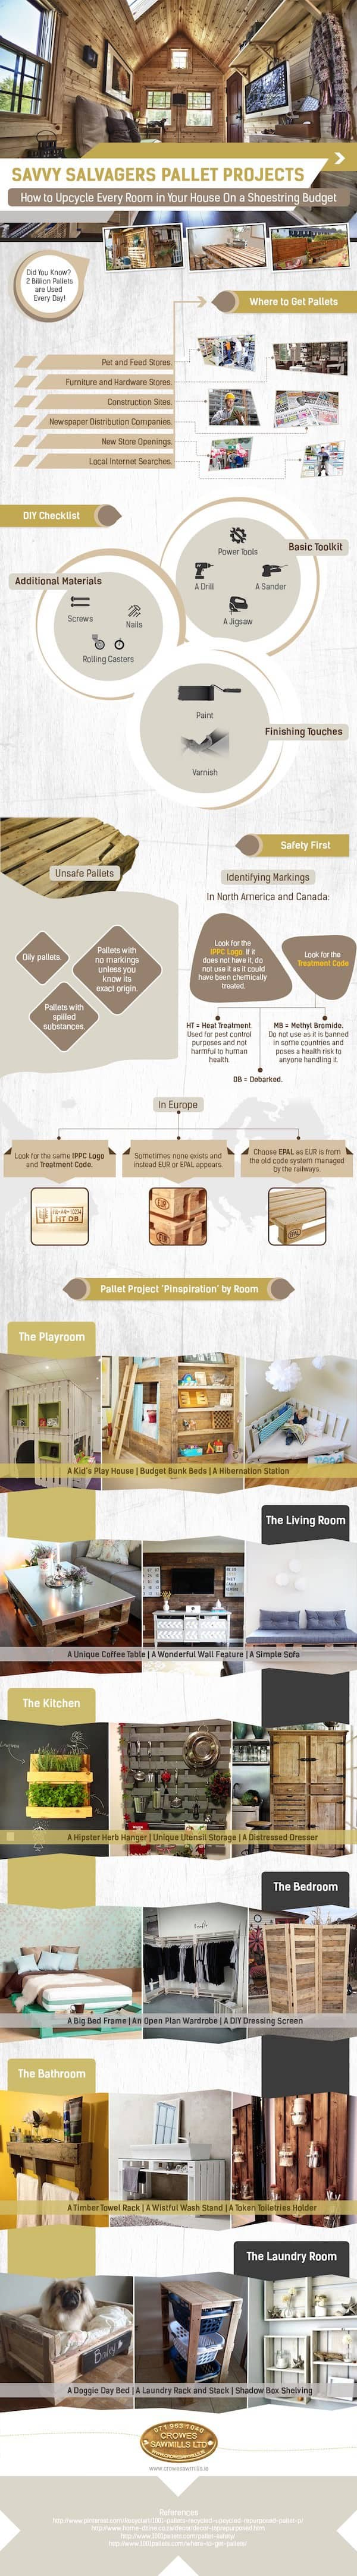 Pallet Projects: How to Upcycle Every Room in Your House on a Shoestring Budget, An Infographic Recycled Pallets